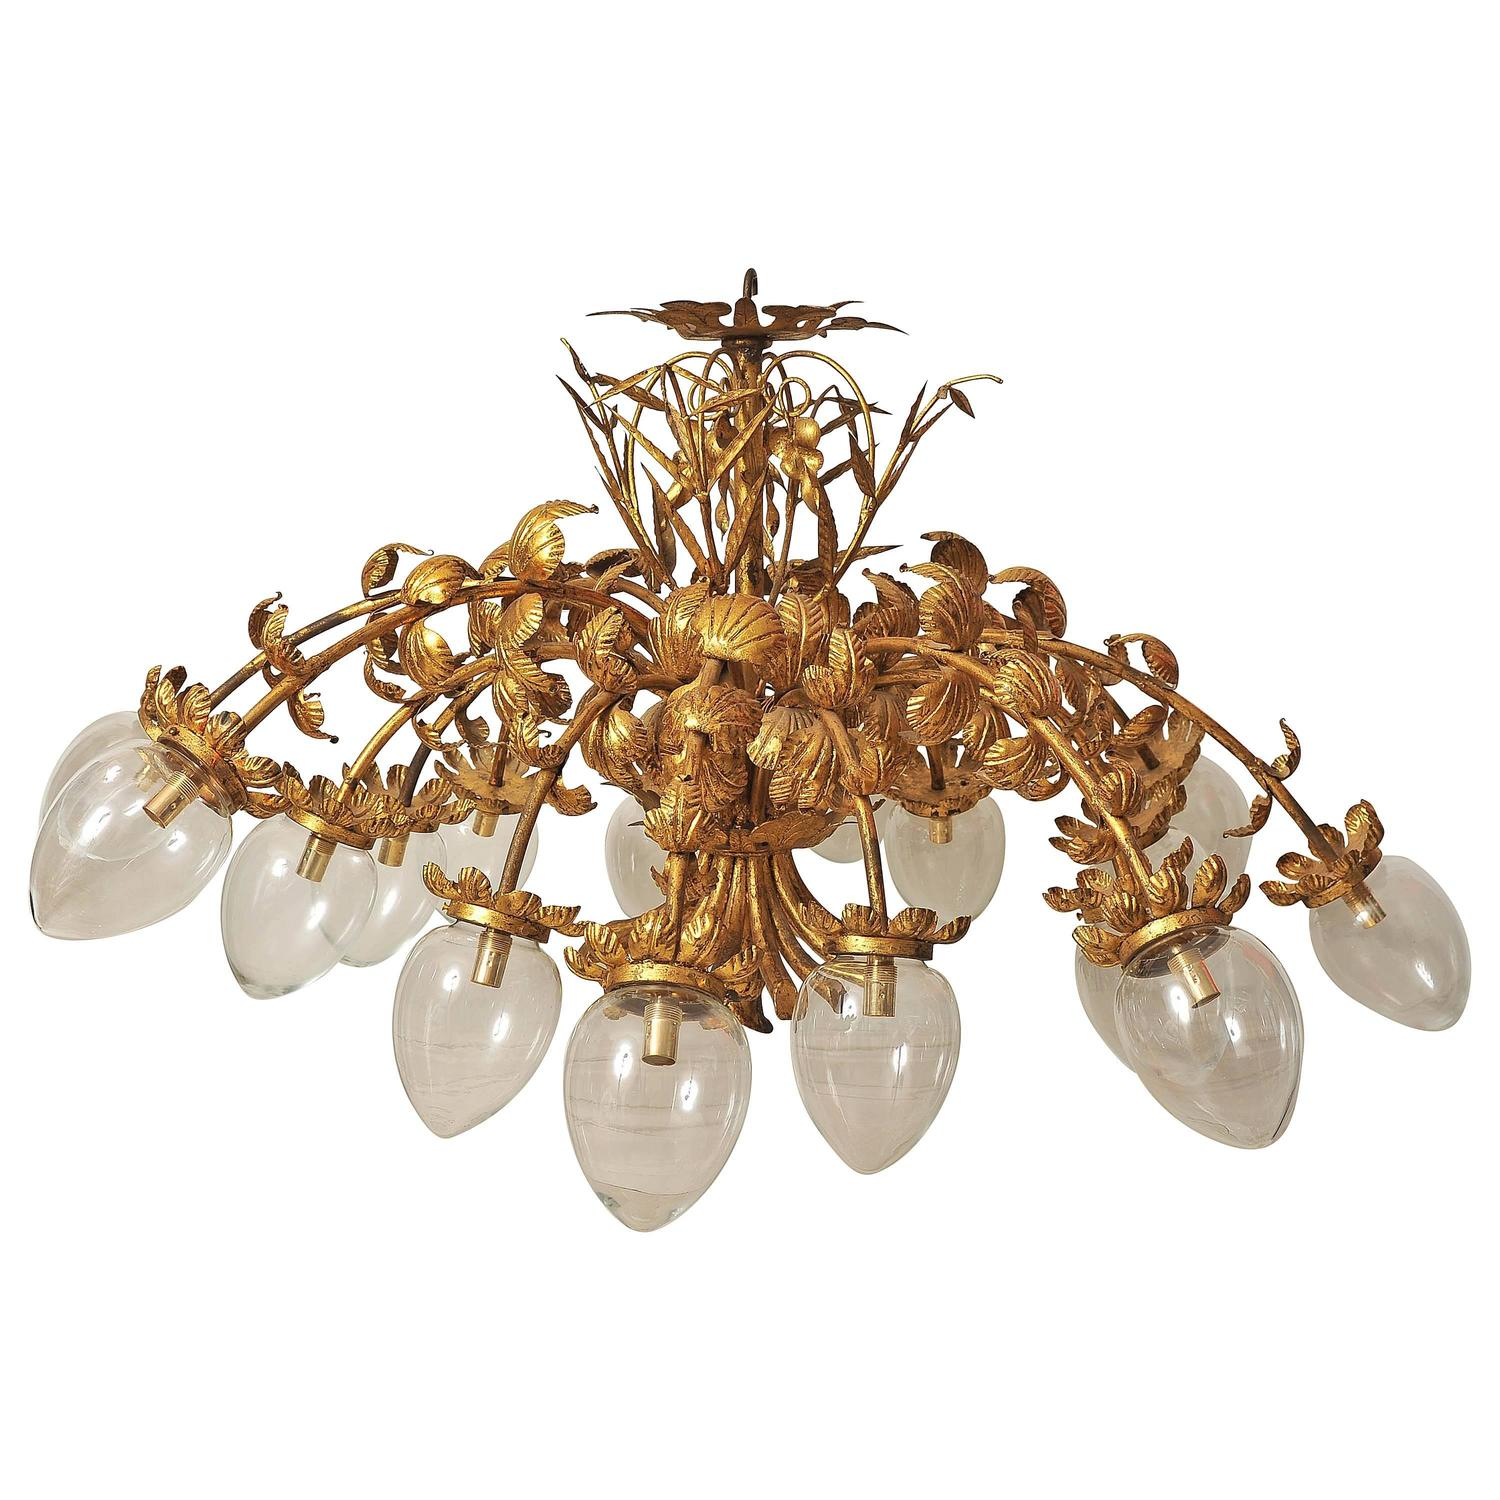 Magnificent 1940s Spanish 16 Arm Gold Toleware Chandelier at 1stdibs